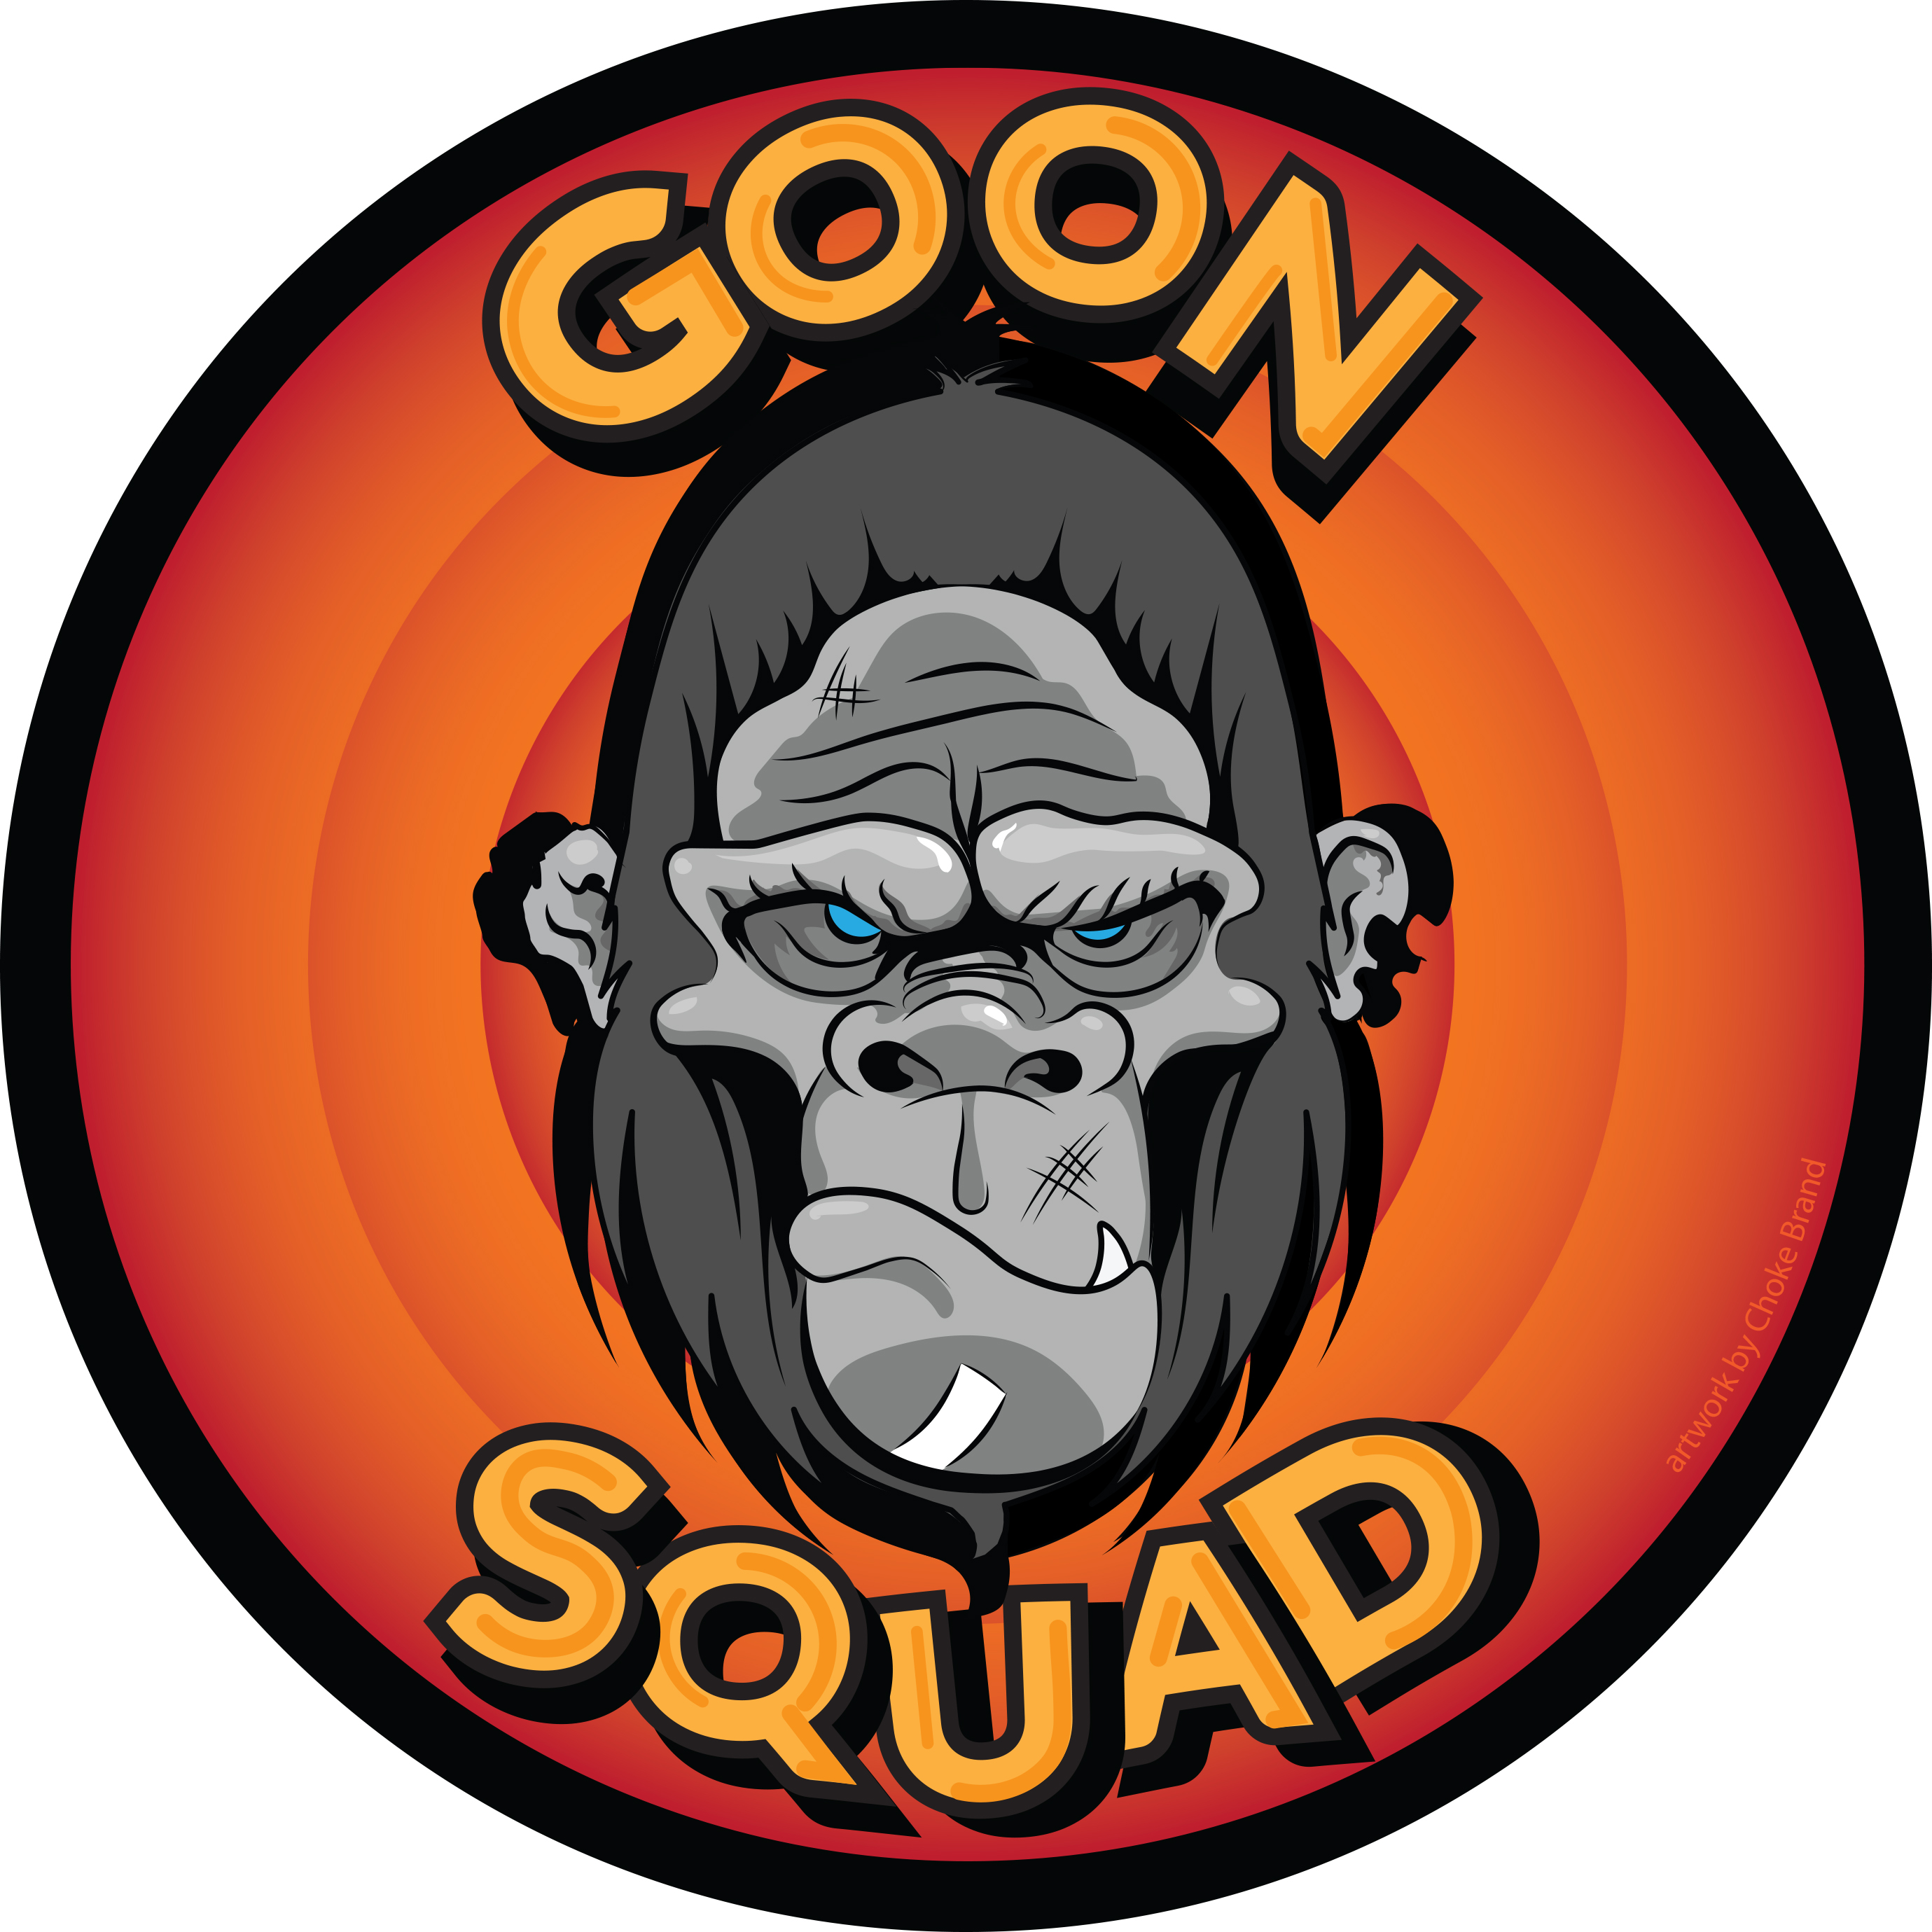 goonsquad patch